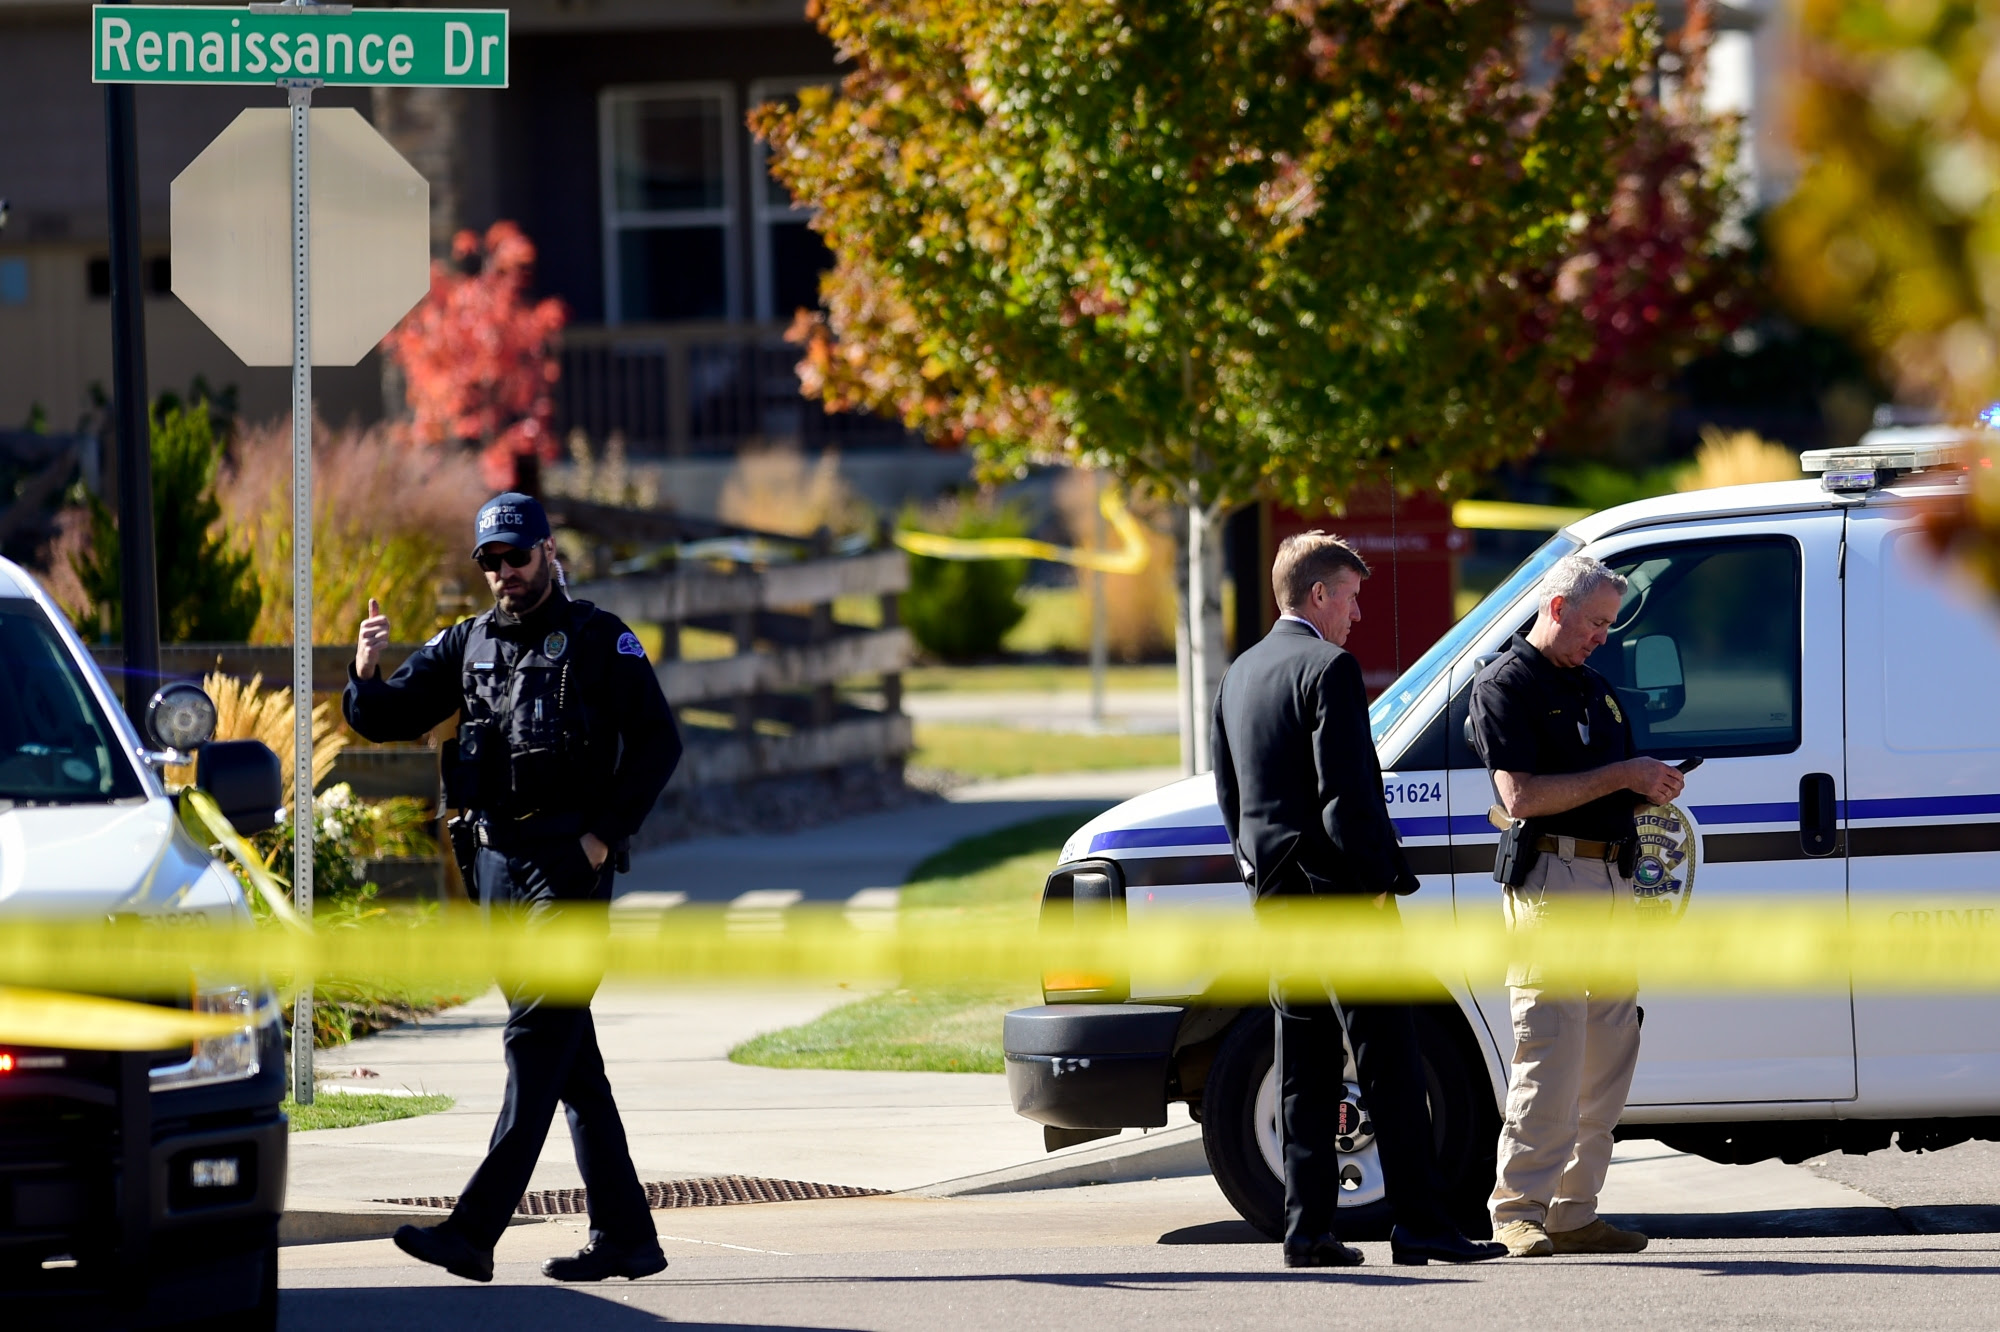 Longmont postal carrier killed Wednesday was in custody battle with suspected shooter, police say